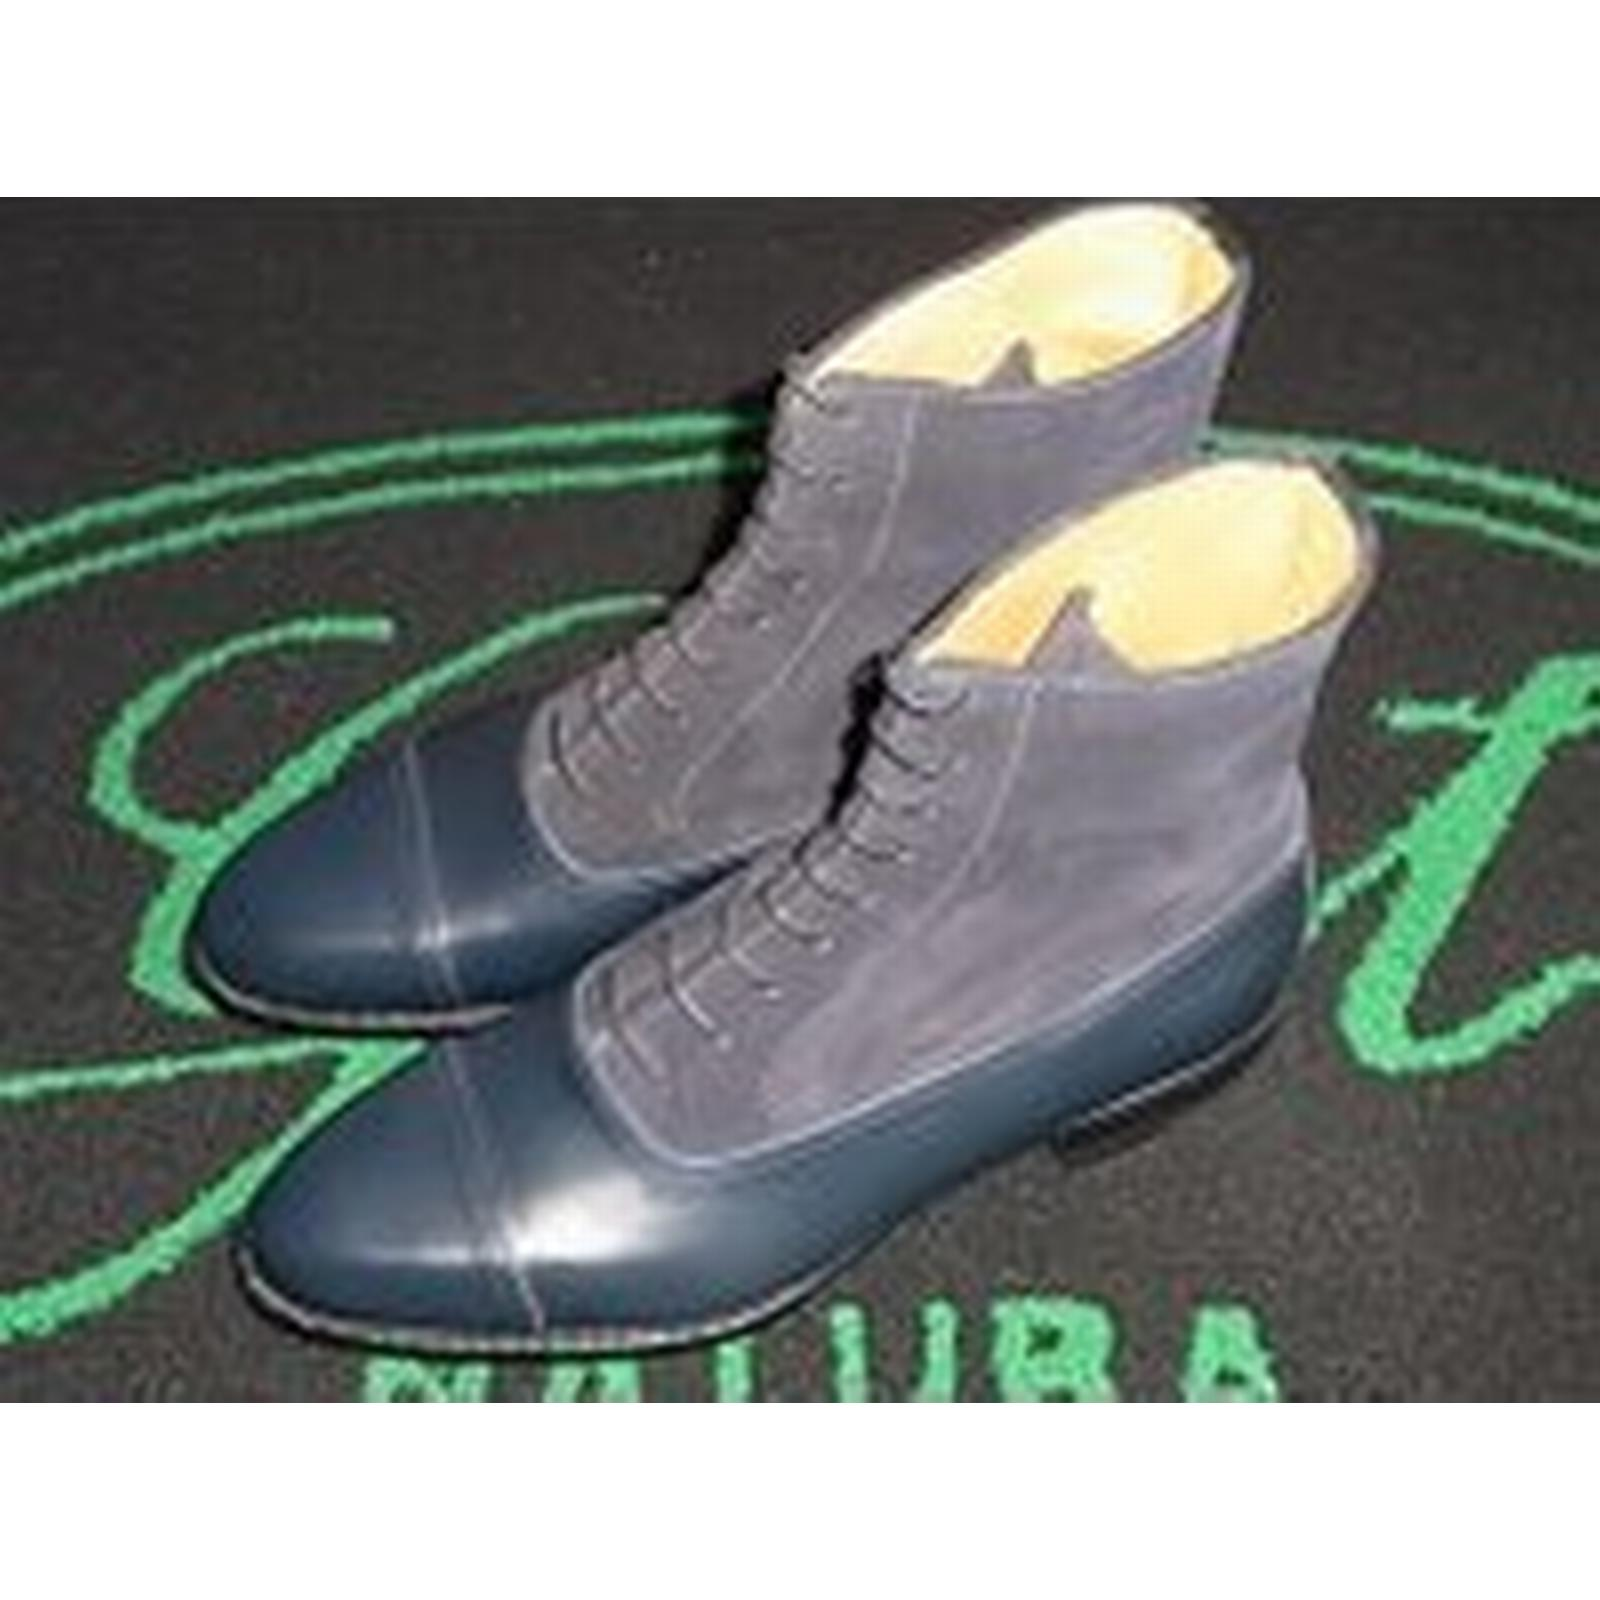 Bonanza (Global) New Handmade Two Men Two Handmade Tone Boots Grey And Blue Oxford Boots Men Ankle High 0d4a6f